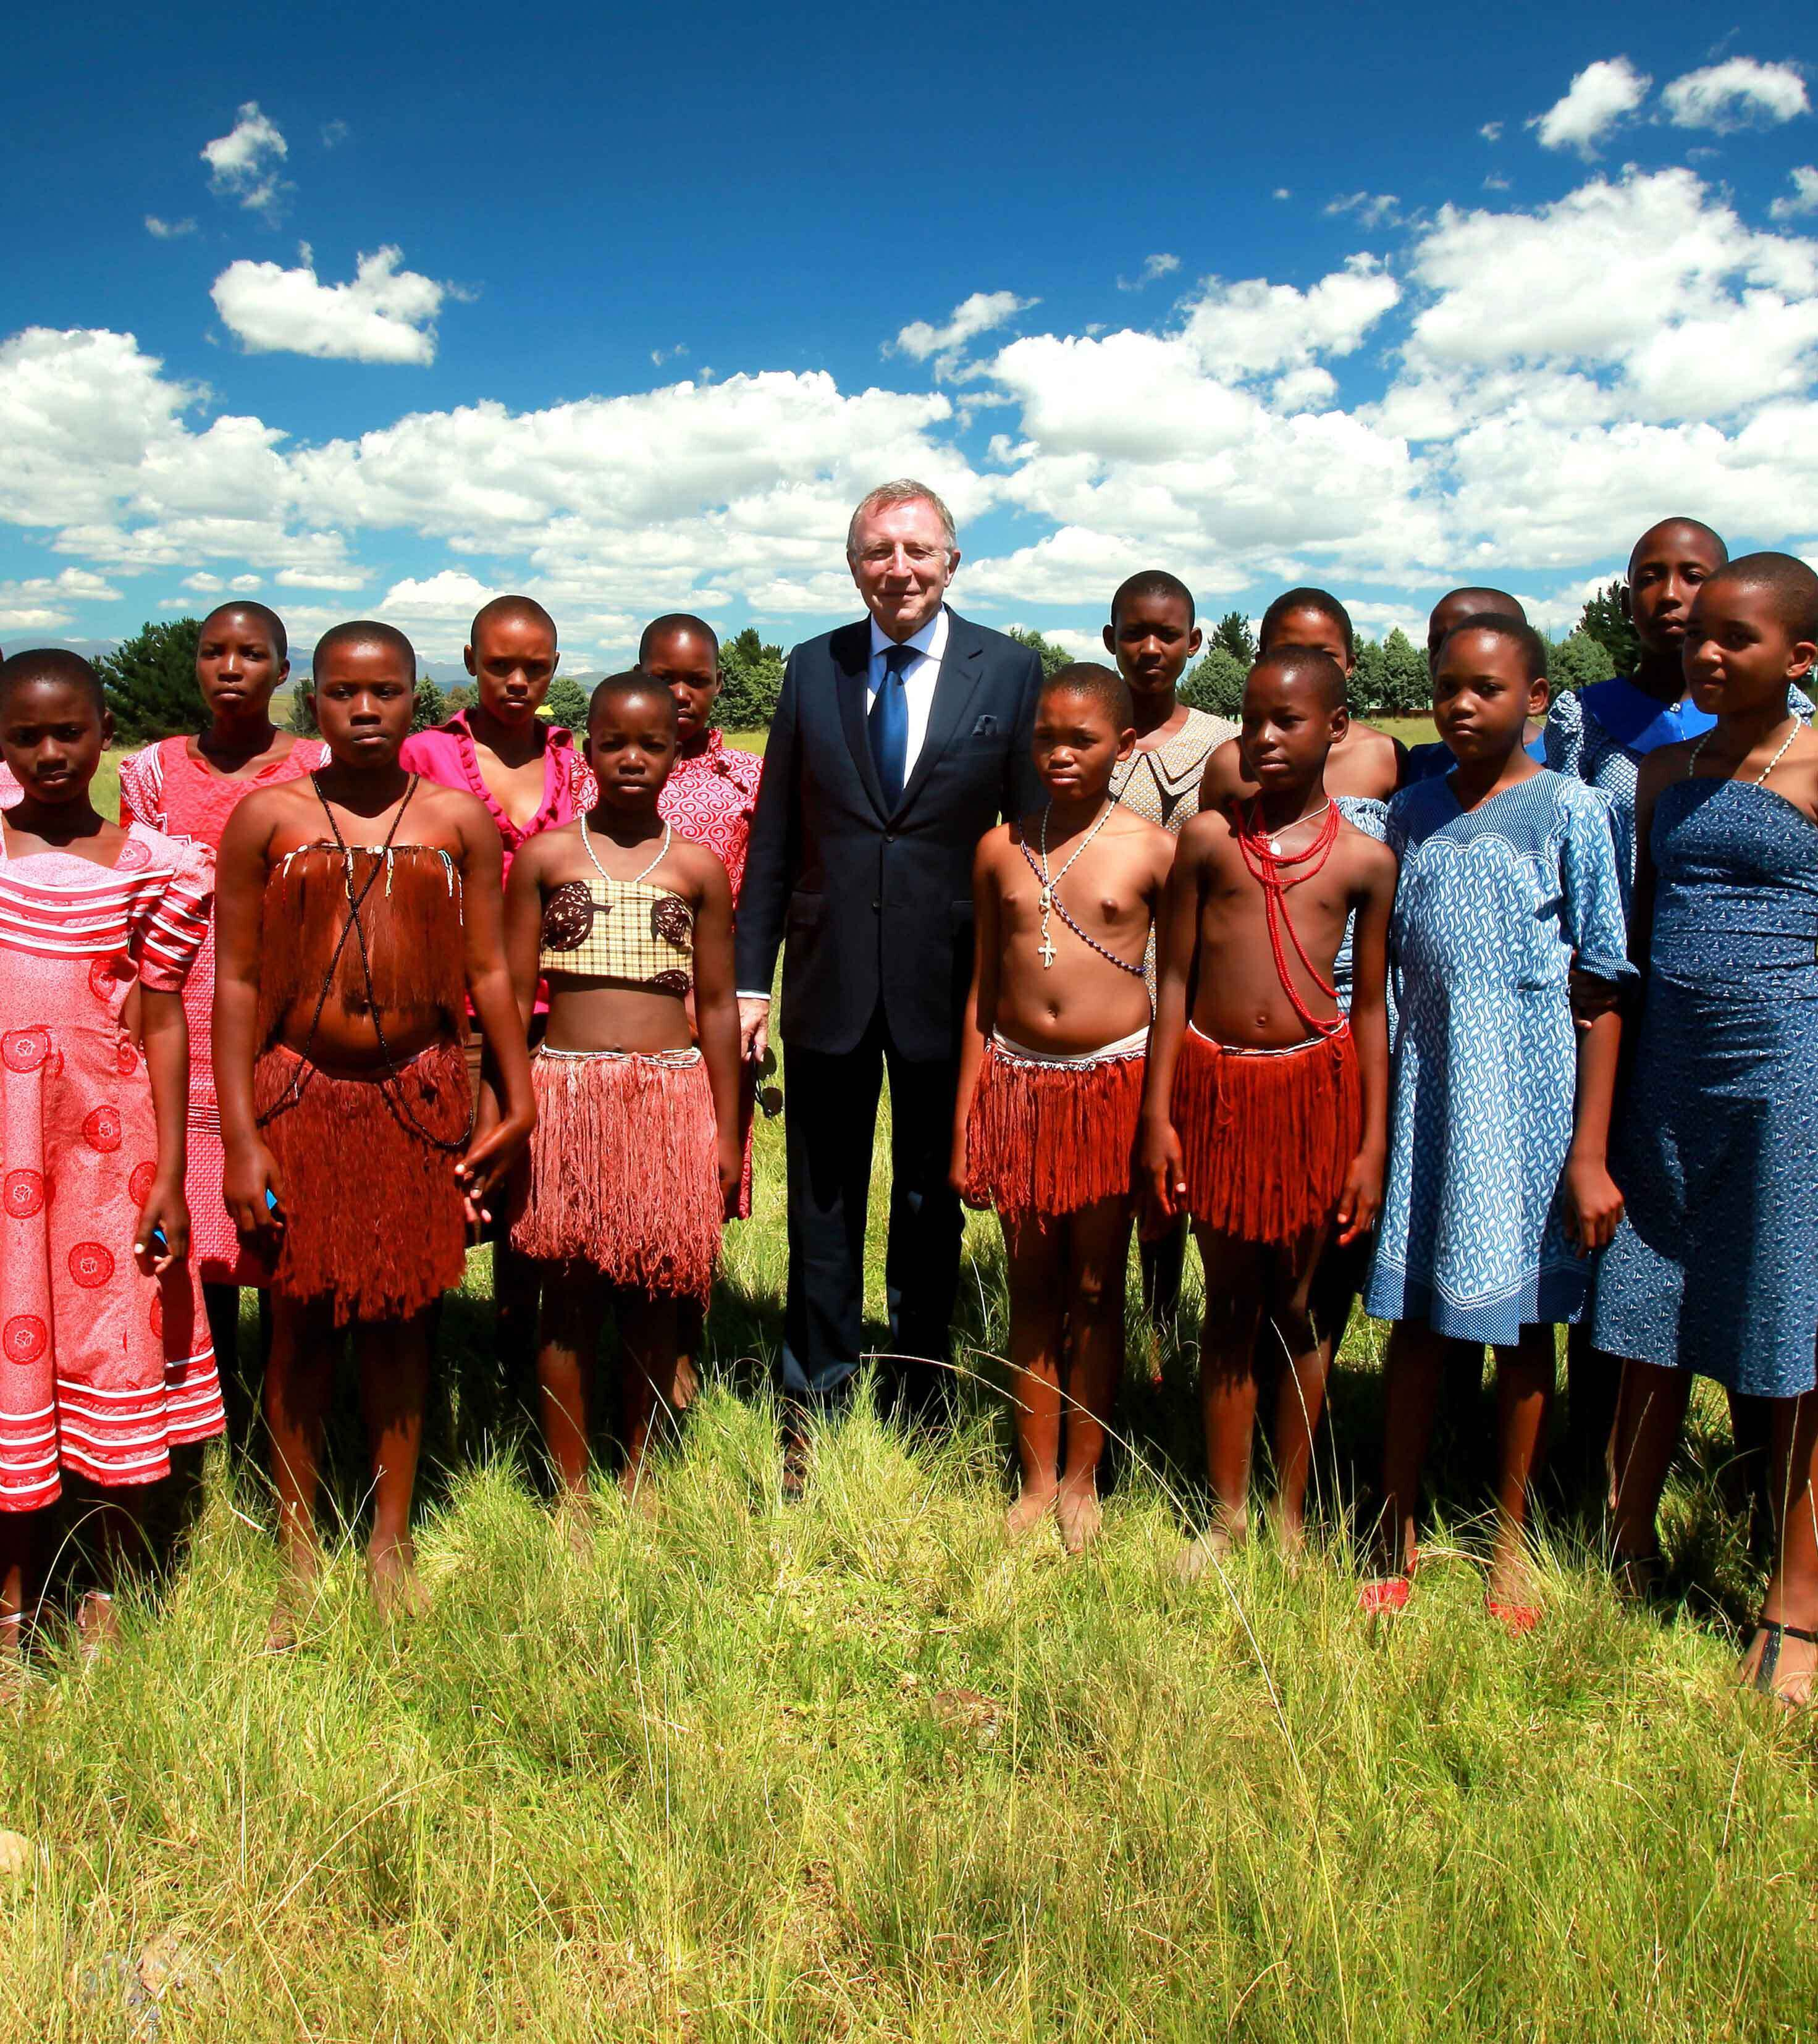 Laurence Graff and children in South Africa